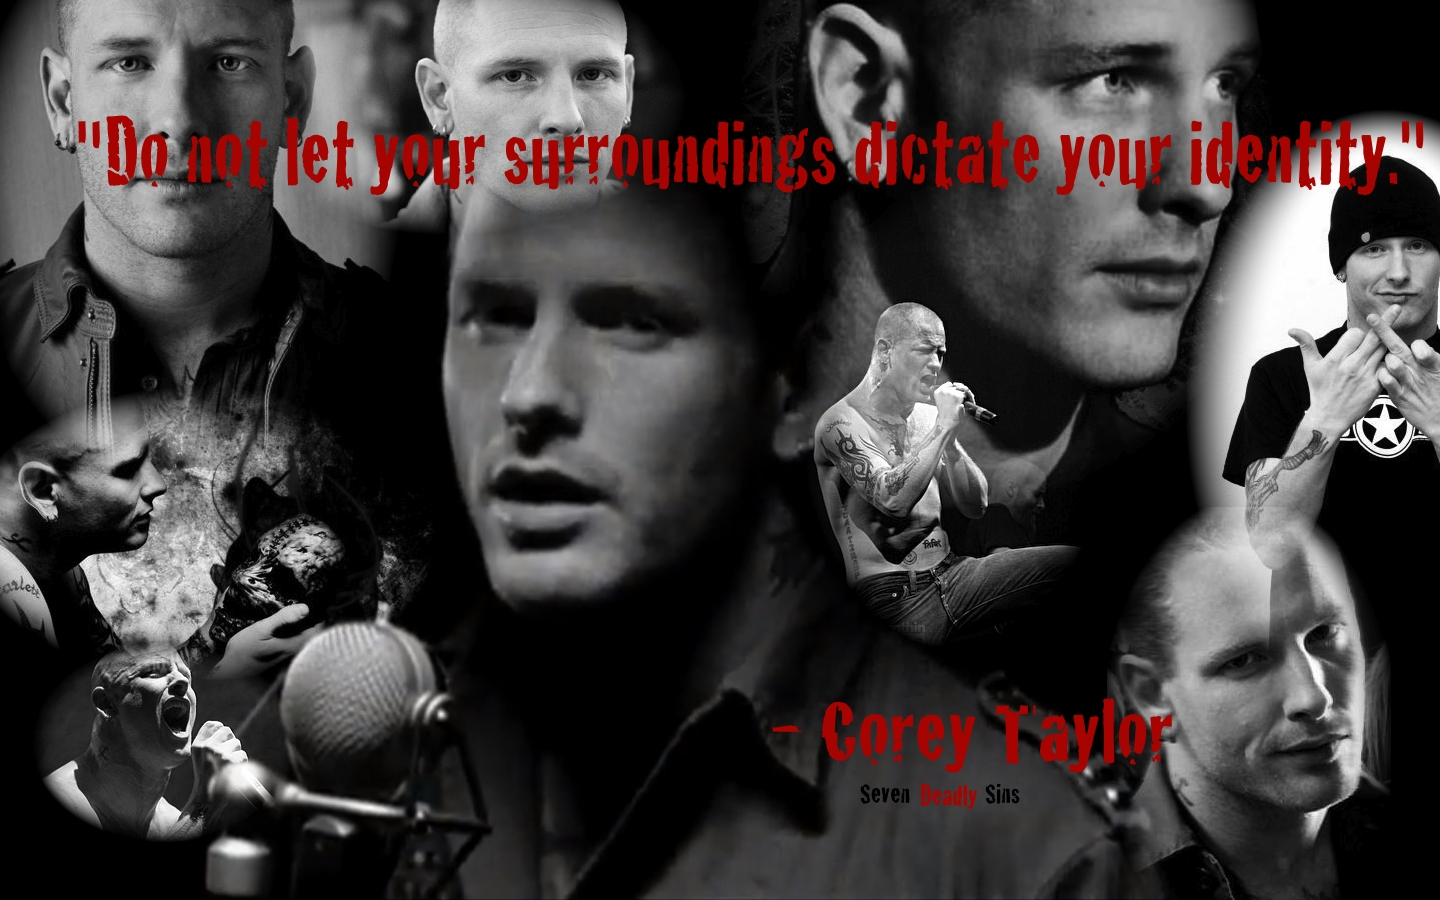 Corey Taylor wallpaper by jimmyakaemily2578 1440x900